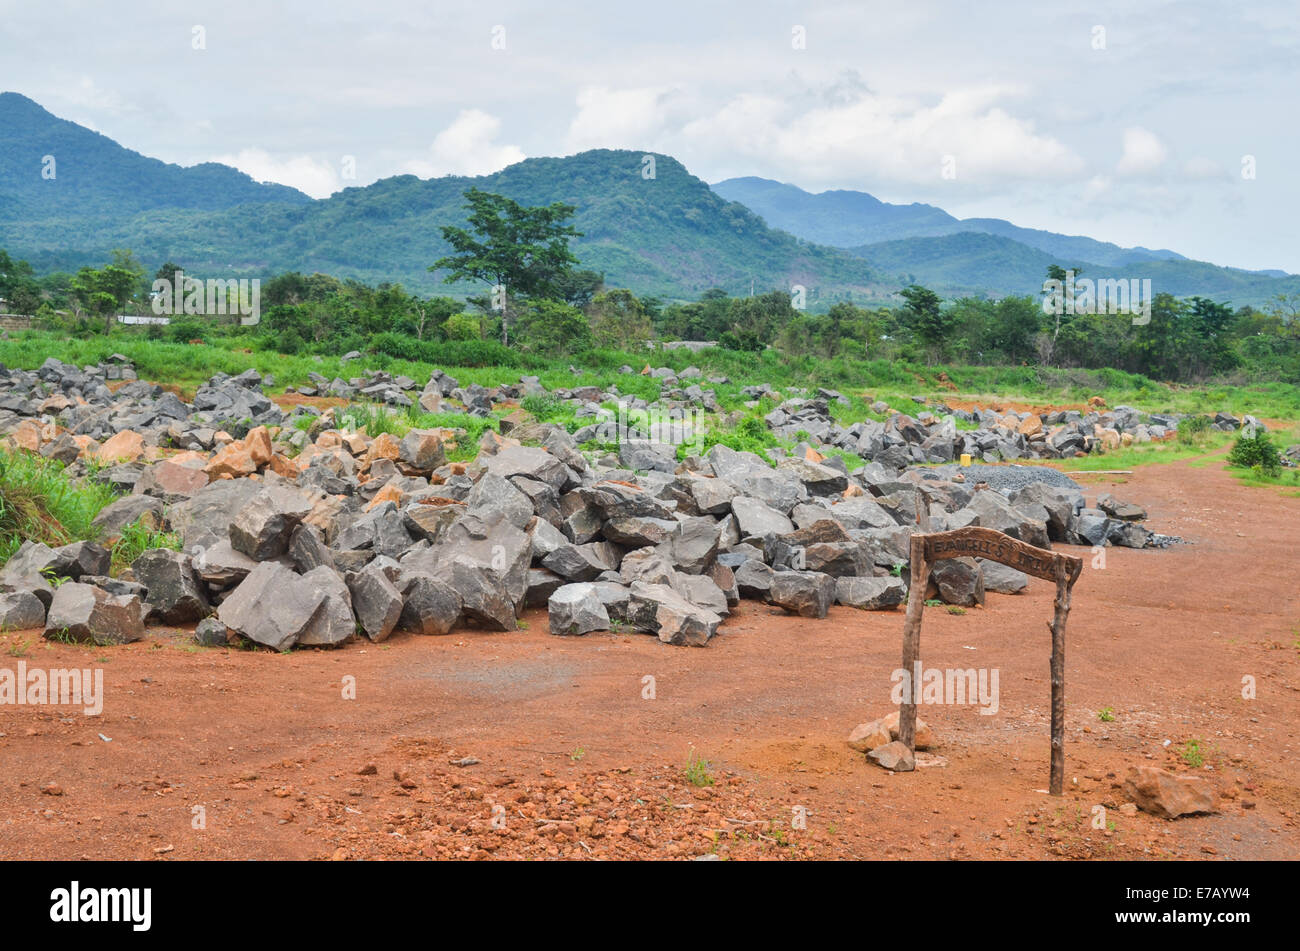 Stones to be crushed on the peninsular road near Freetown, Sierra Leone - Stock Image